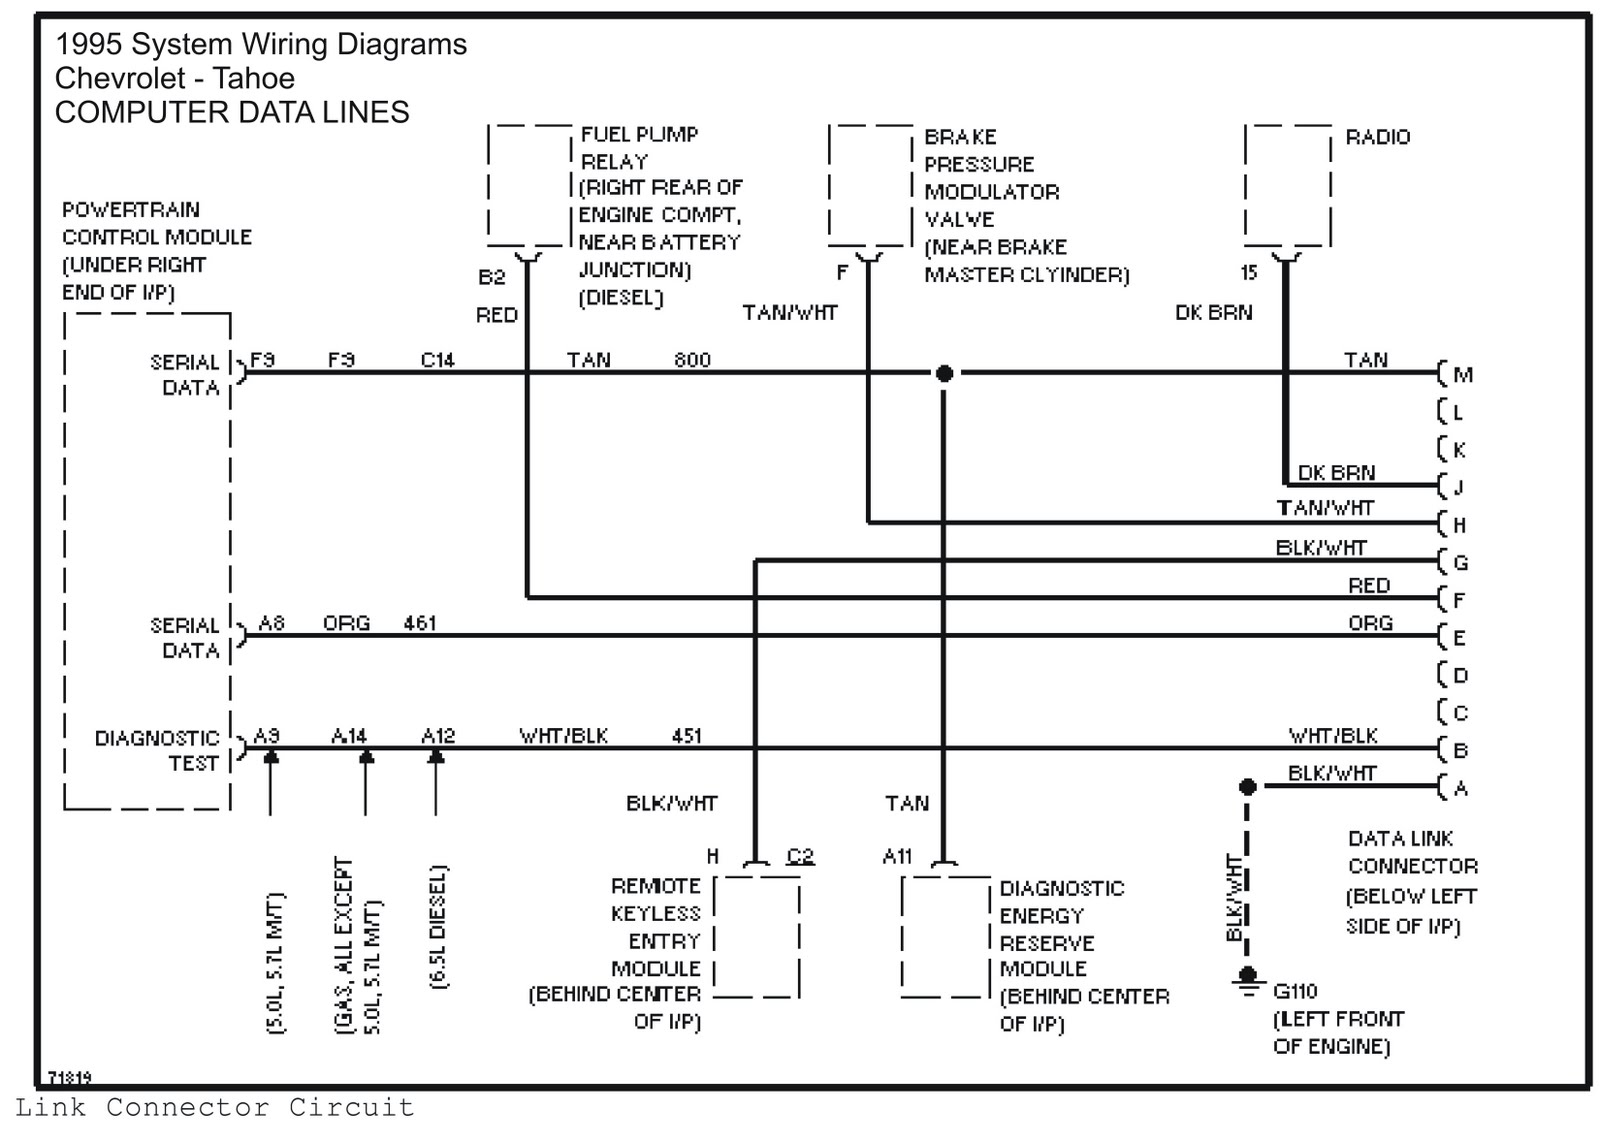 1995 system wiring diagrams chevrolet tahoe computer data. Black Bedroom Furniture Sets. Home Design Ideas